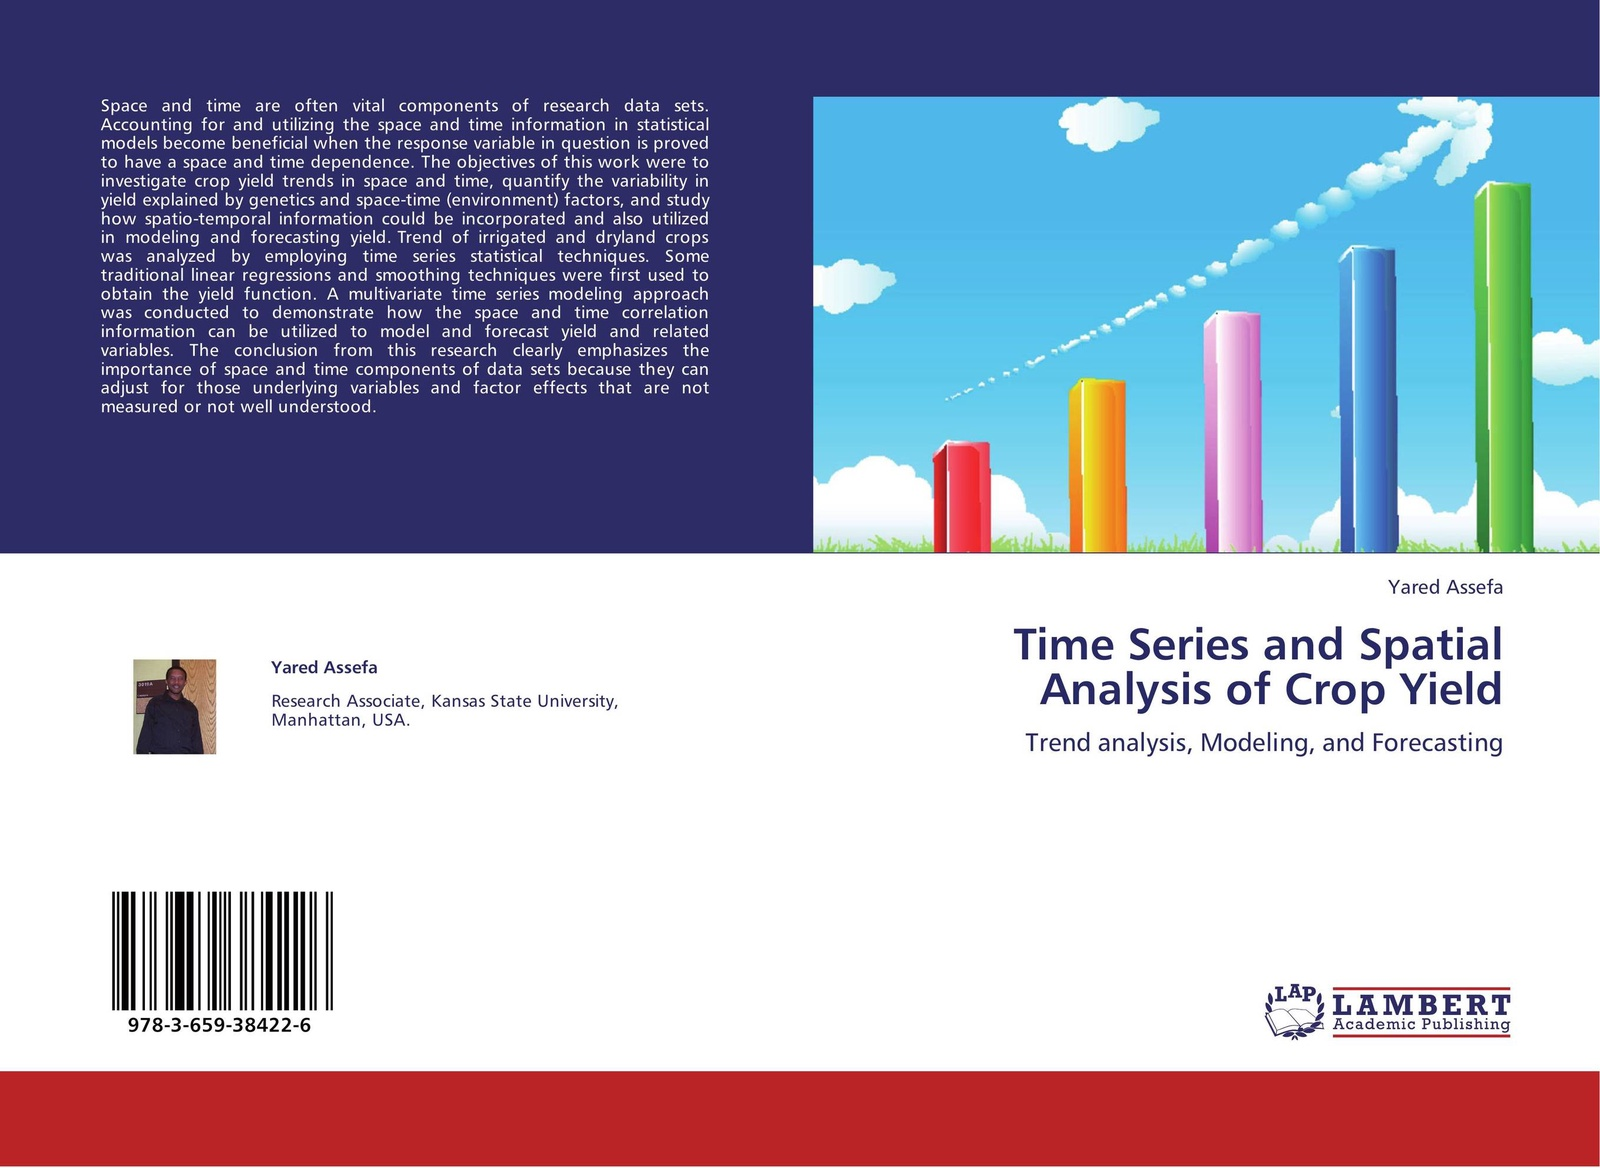 Yared Assefa Time Series and Spatial Analysis of Crop Yield блокнот printio space and time